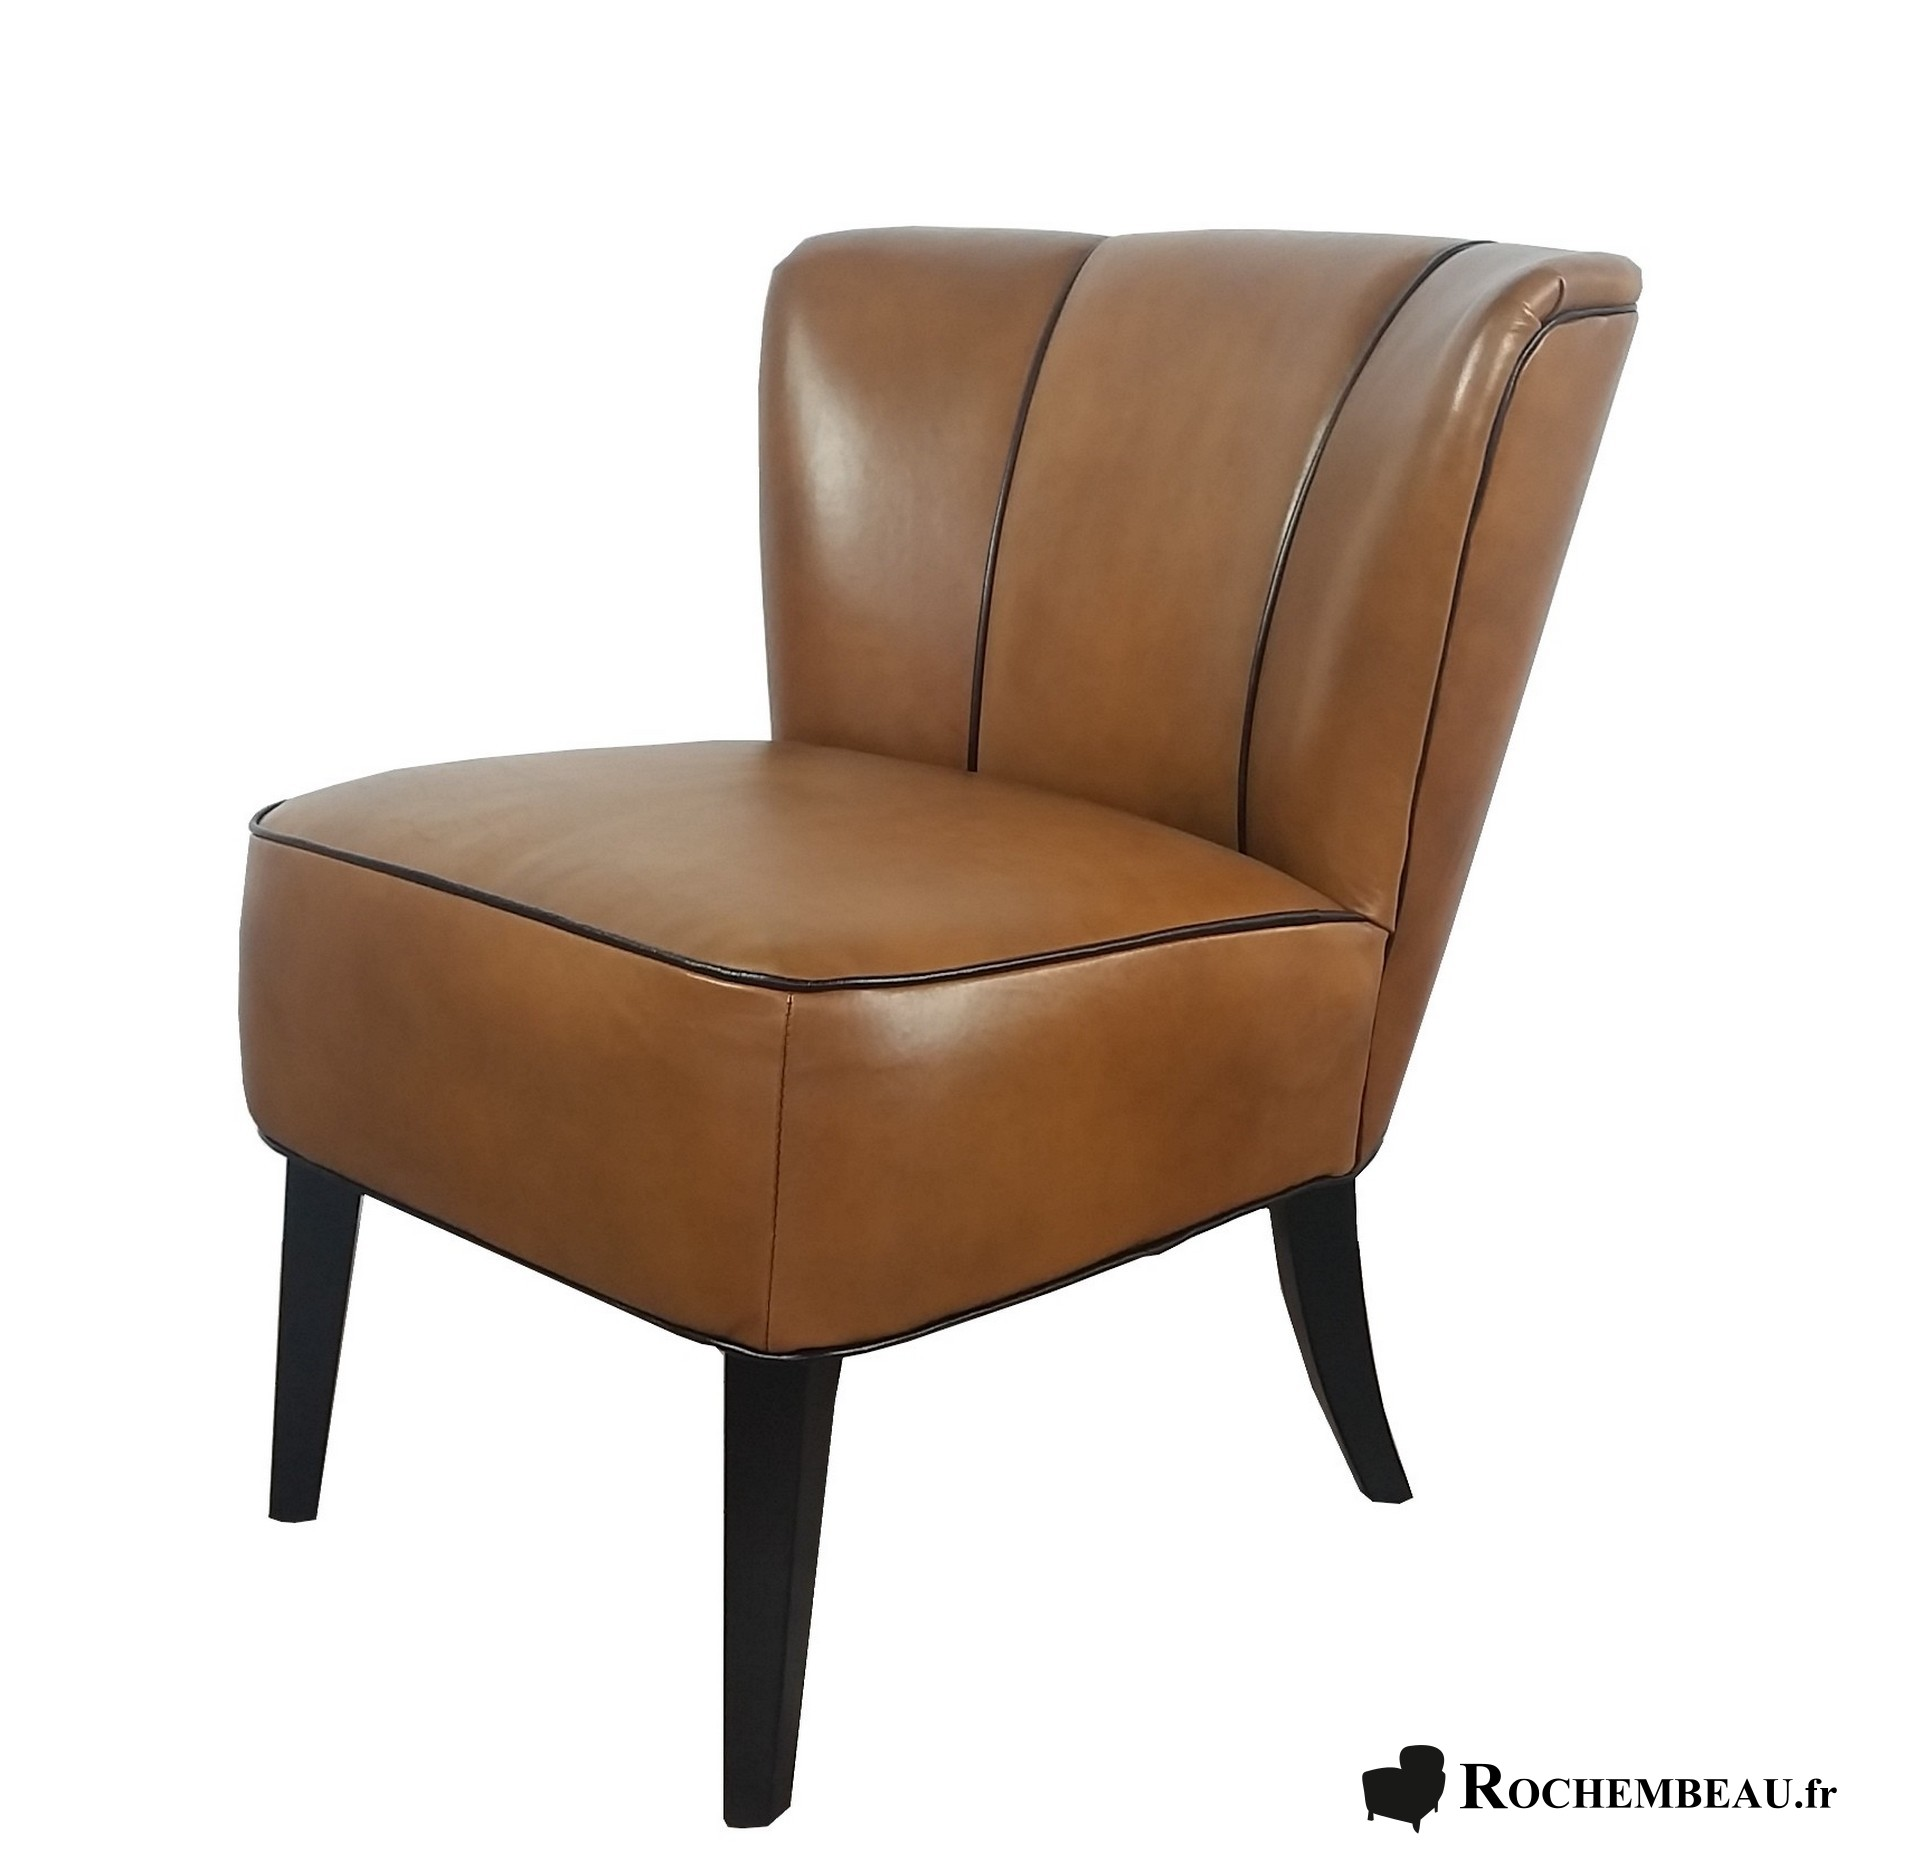 fauteuil berg re en cuir marron maisons du monde fauteuil berg re en cuir marron et m tal viss. Black Bedroom Furniture Sets. Home Design Ideas